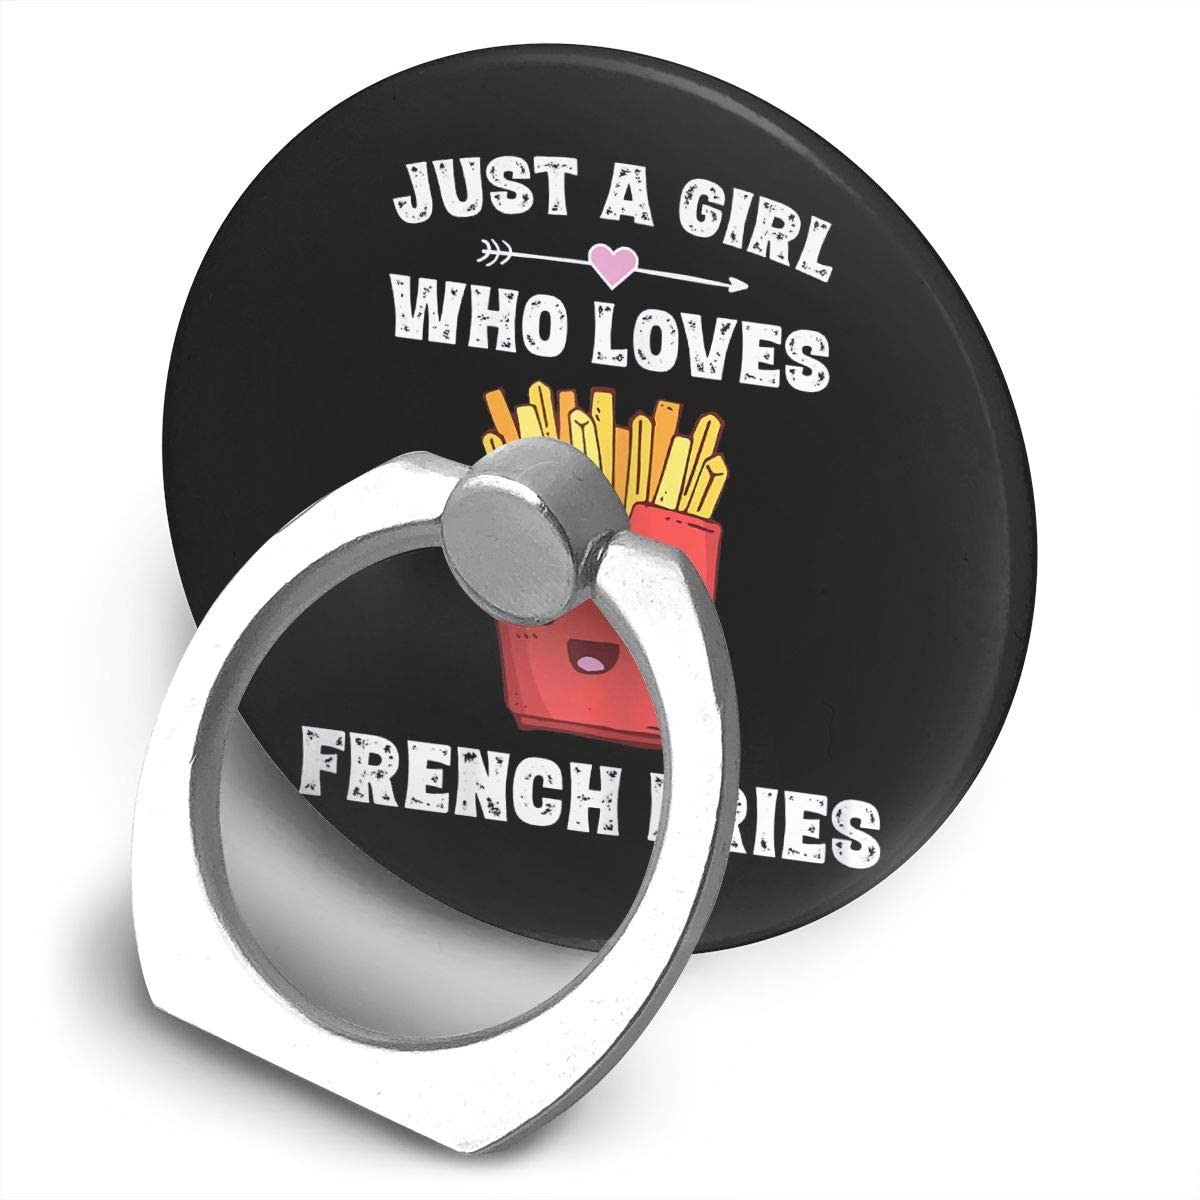 Zwinz Just A Girl Who Loves French Fries Funny Alloy Mobile Phone Ring Bracket,360 Degree Rotating Ring Stand Grip Mounts